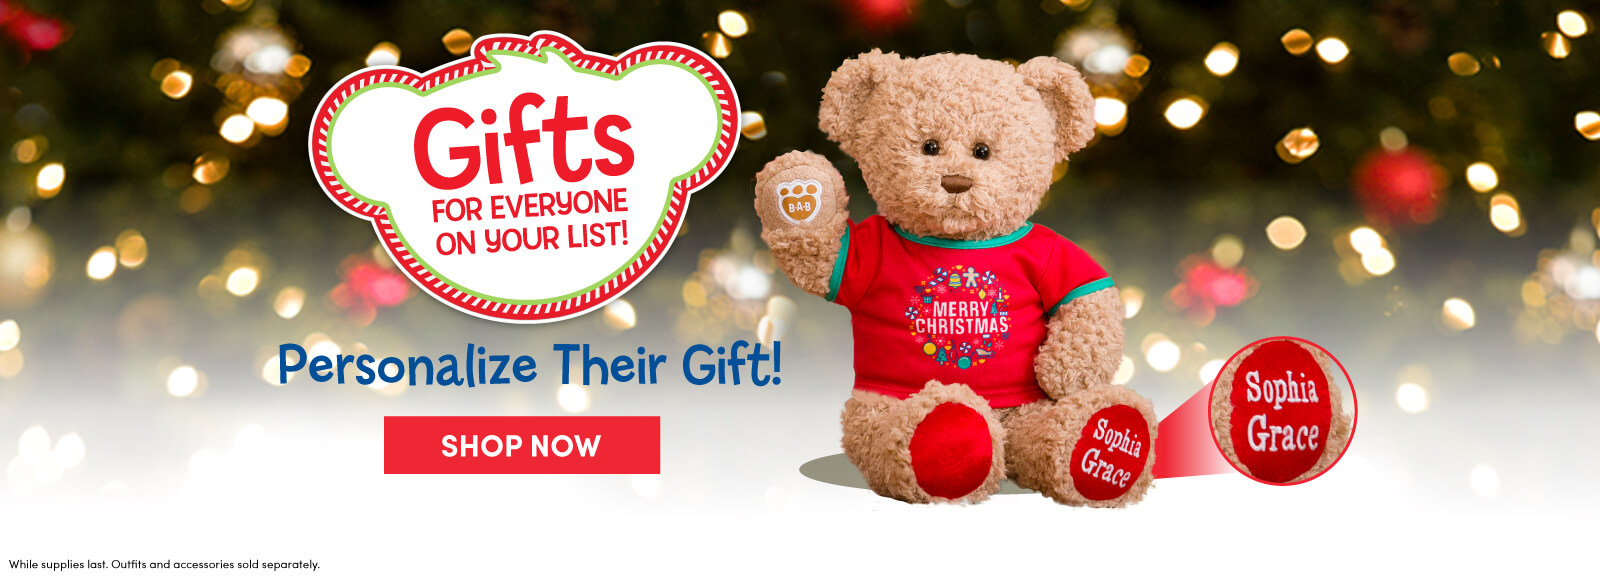 Shop Build-A-Bear Workshop Gift Cards